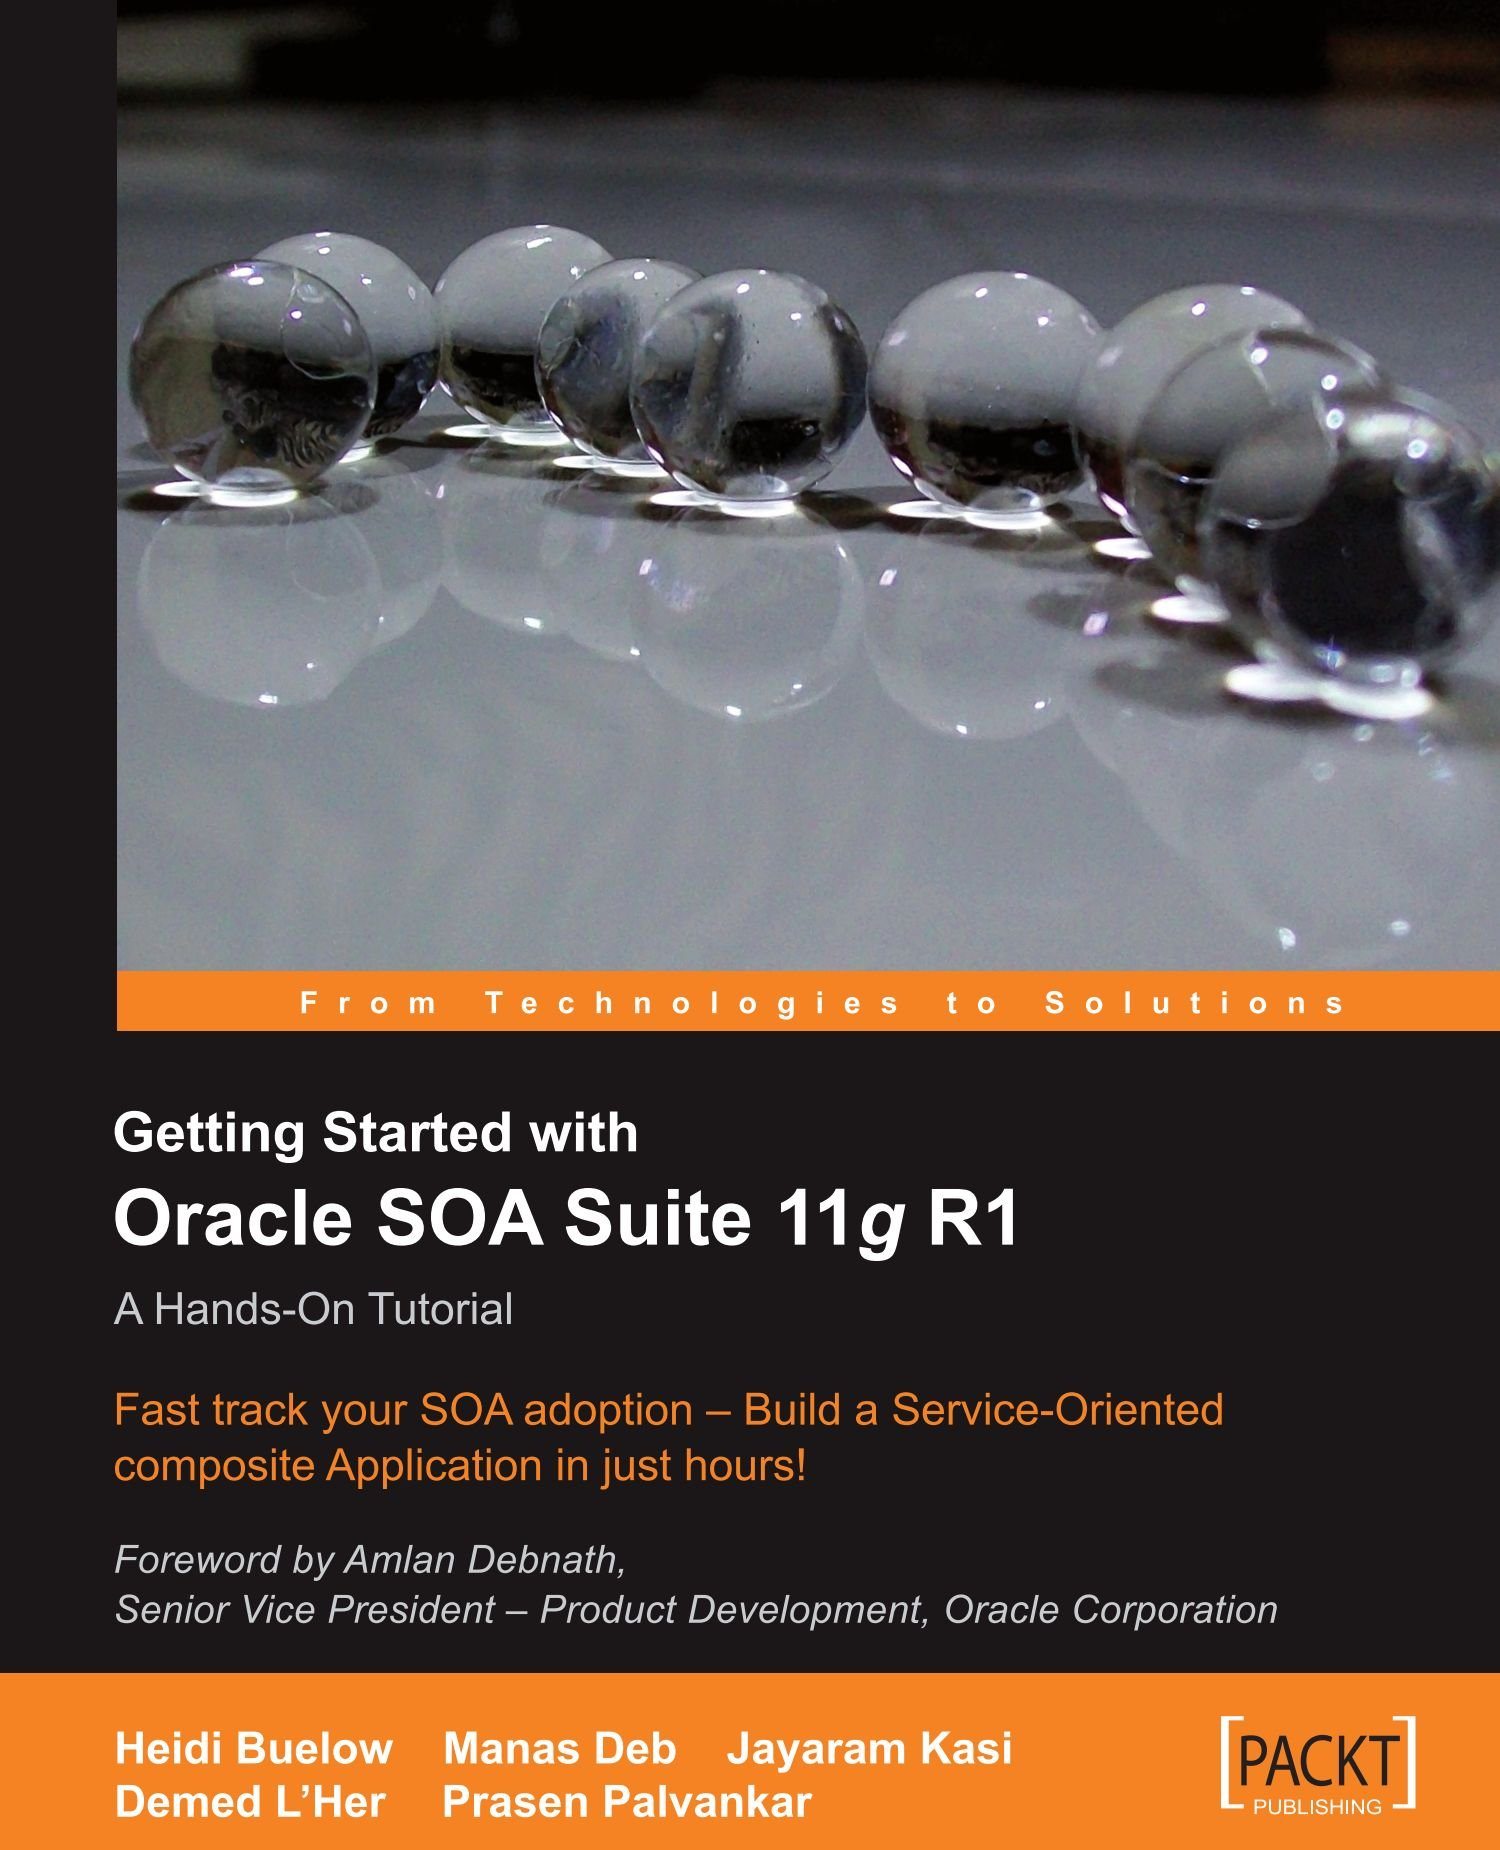 Getting started with oracle soa suite 11g r1 a hands-on tutorial.